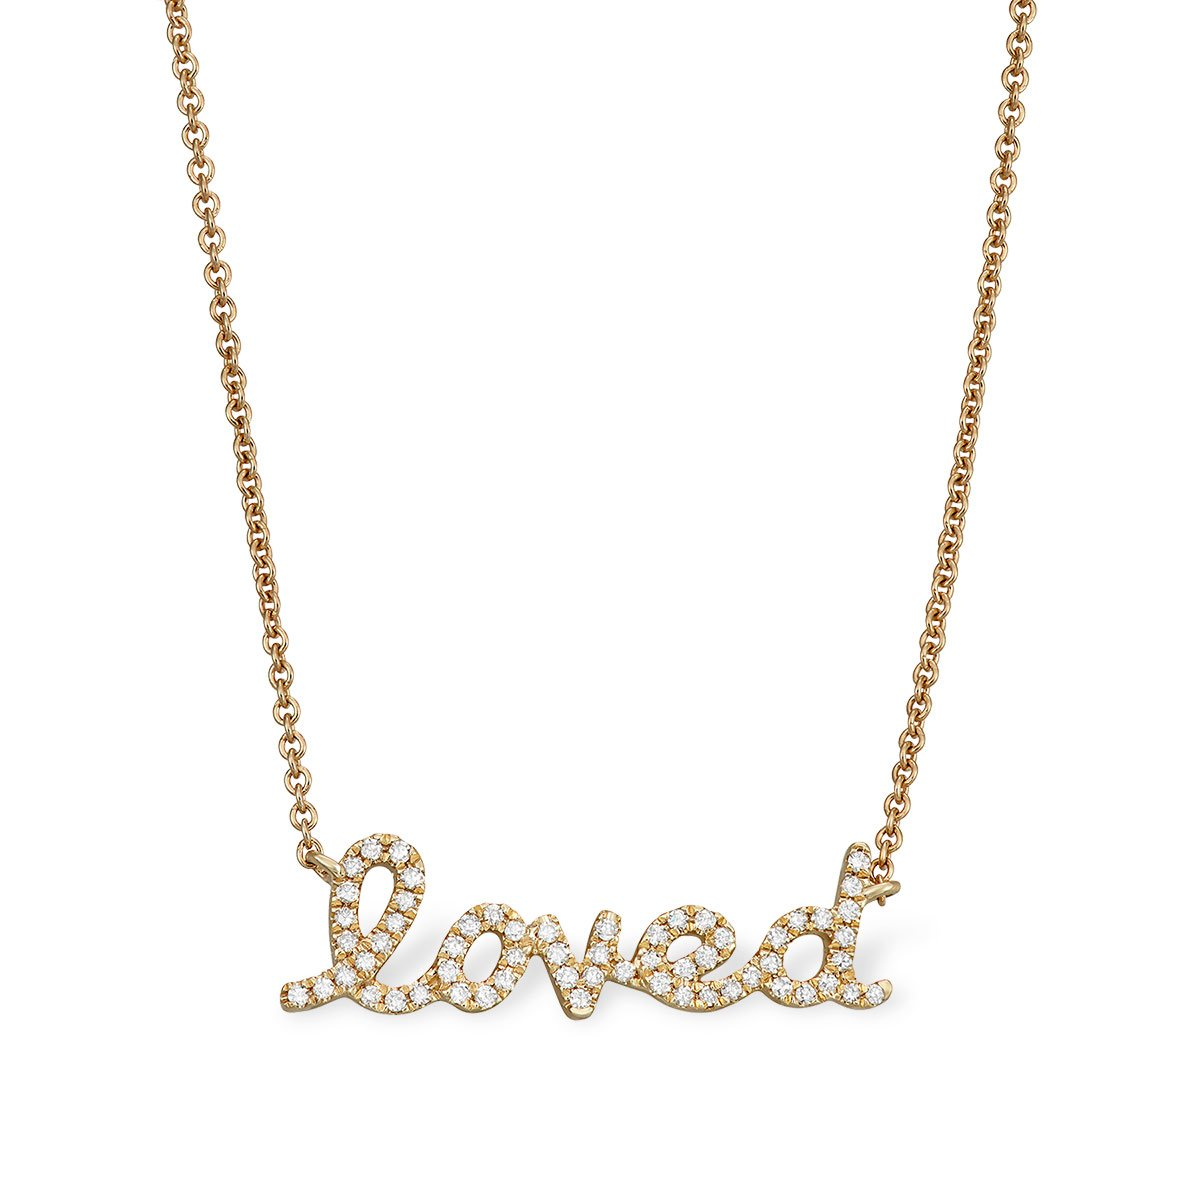 'Loved' Message Necklace - Serena Williams Jewelry